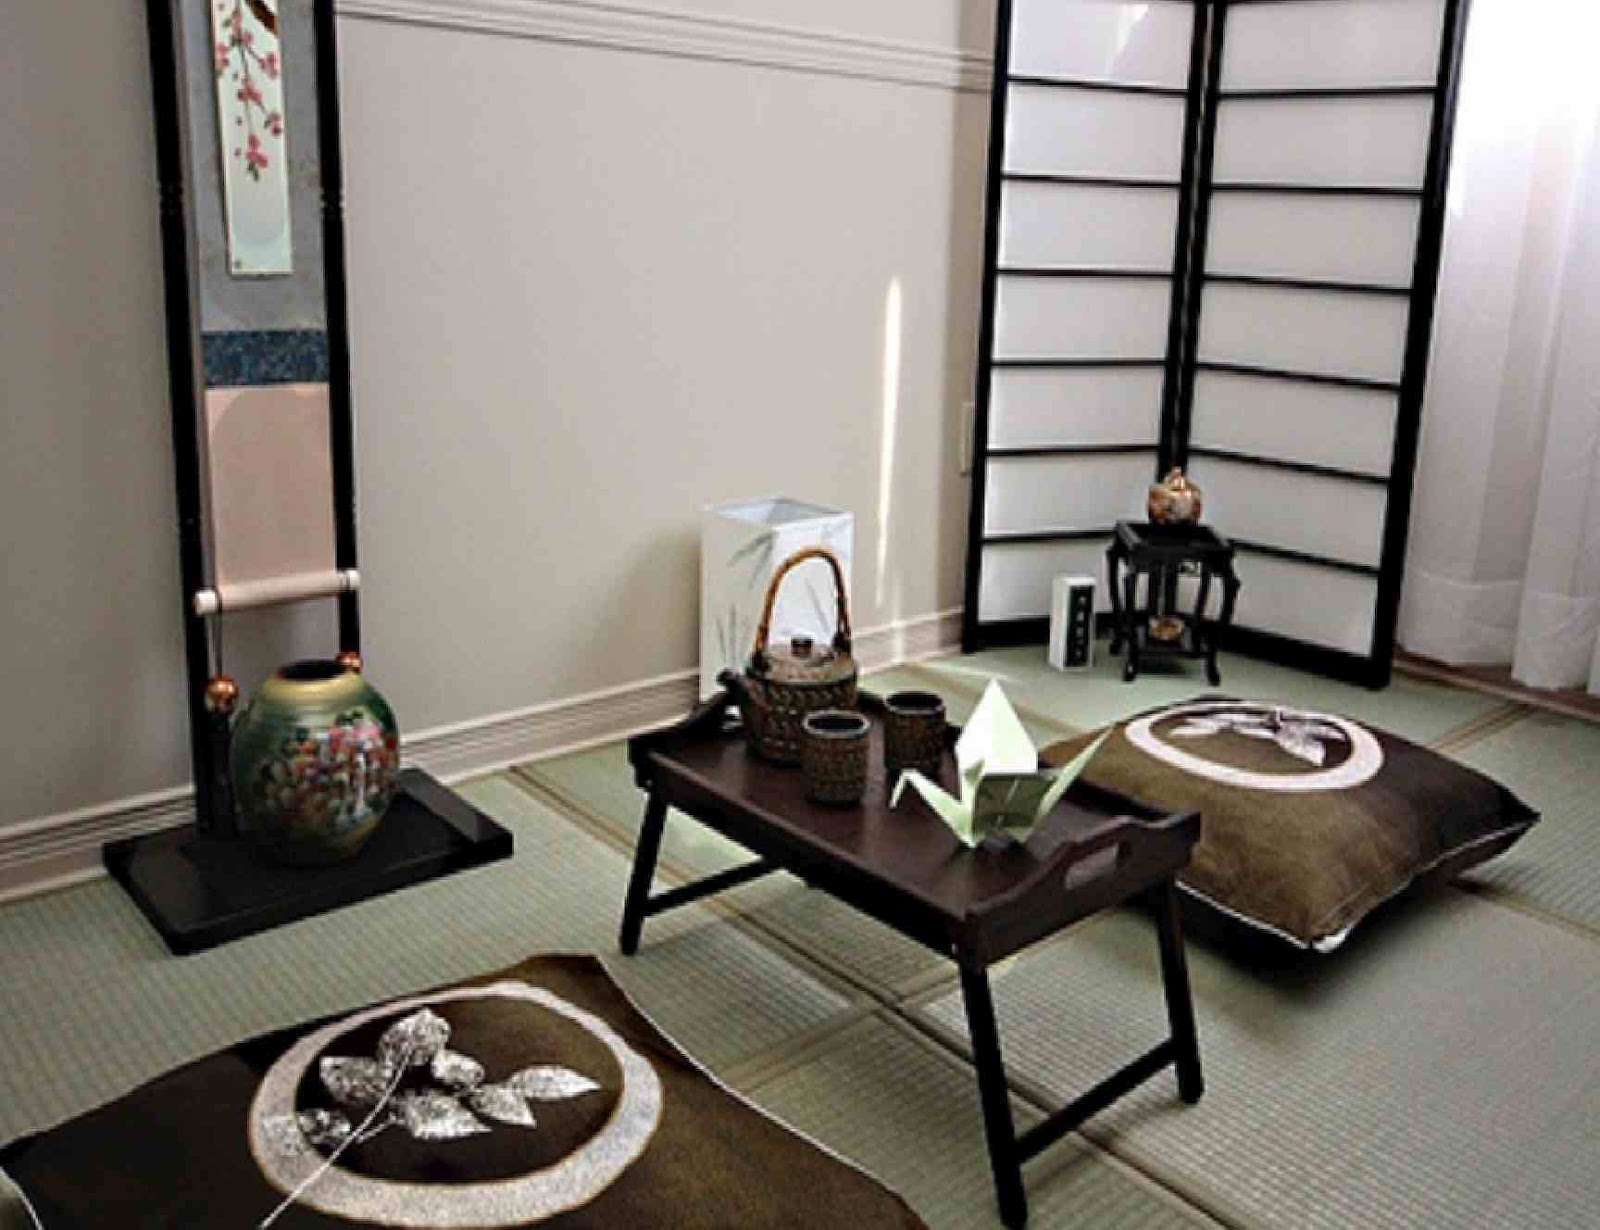 japanese interior design interior home design ForJapanese Home Decorations